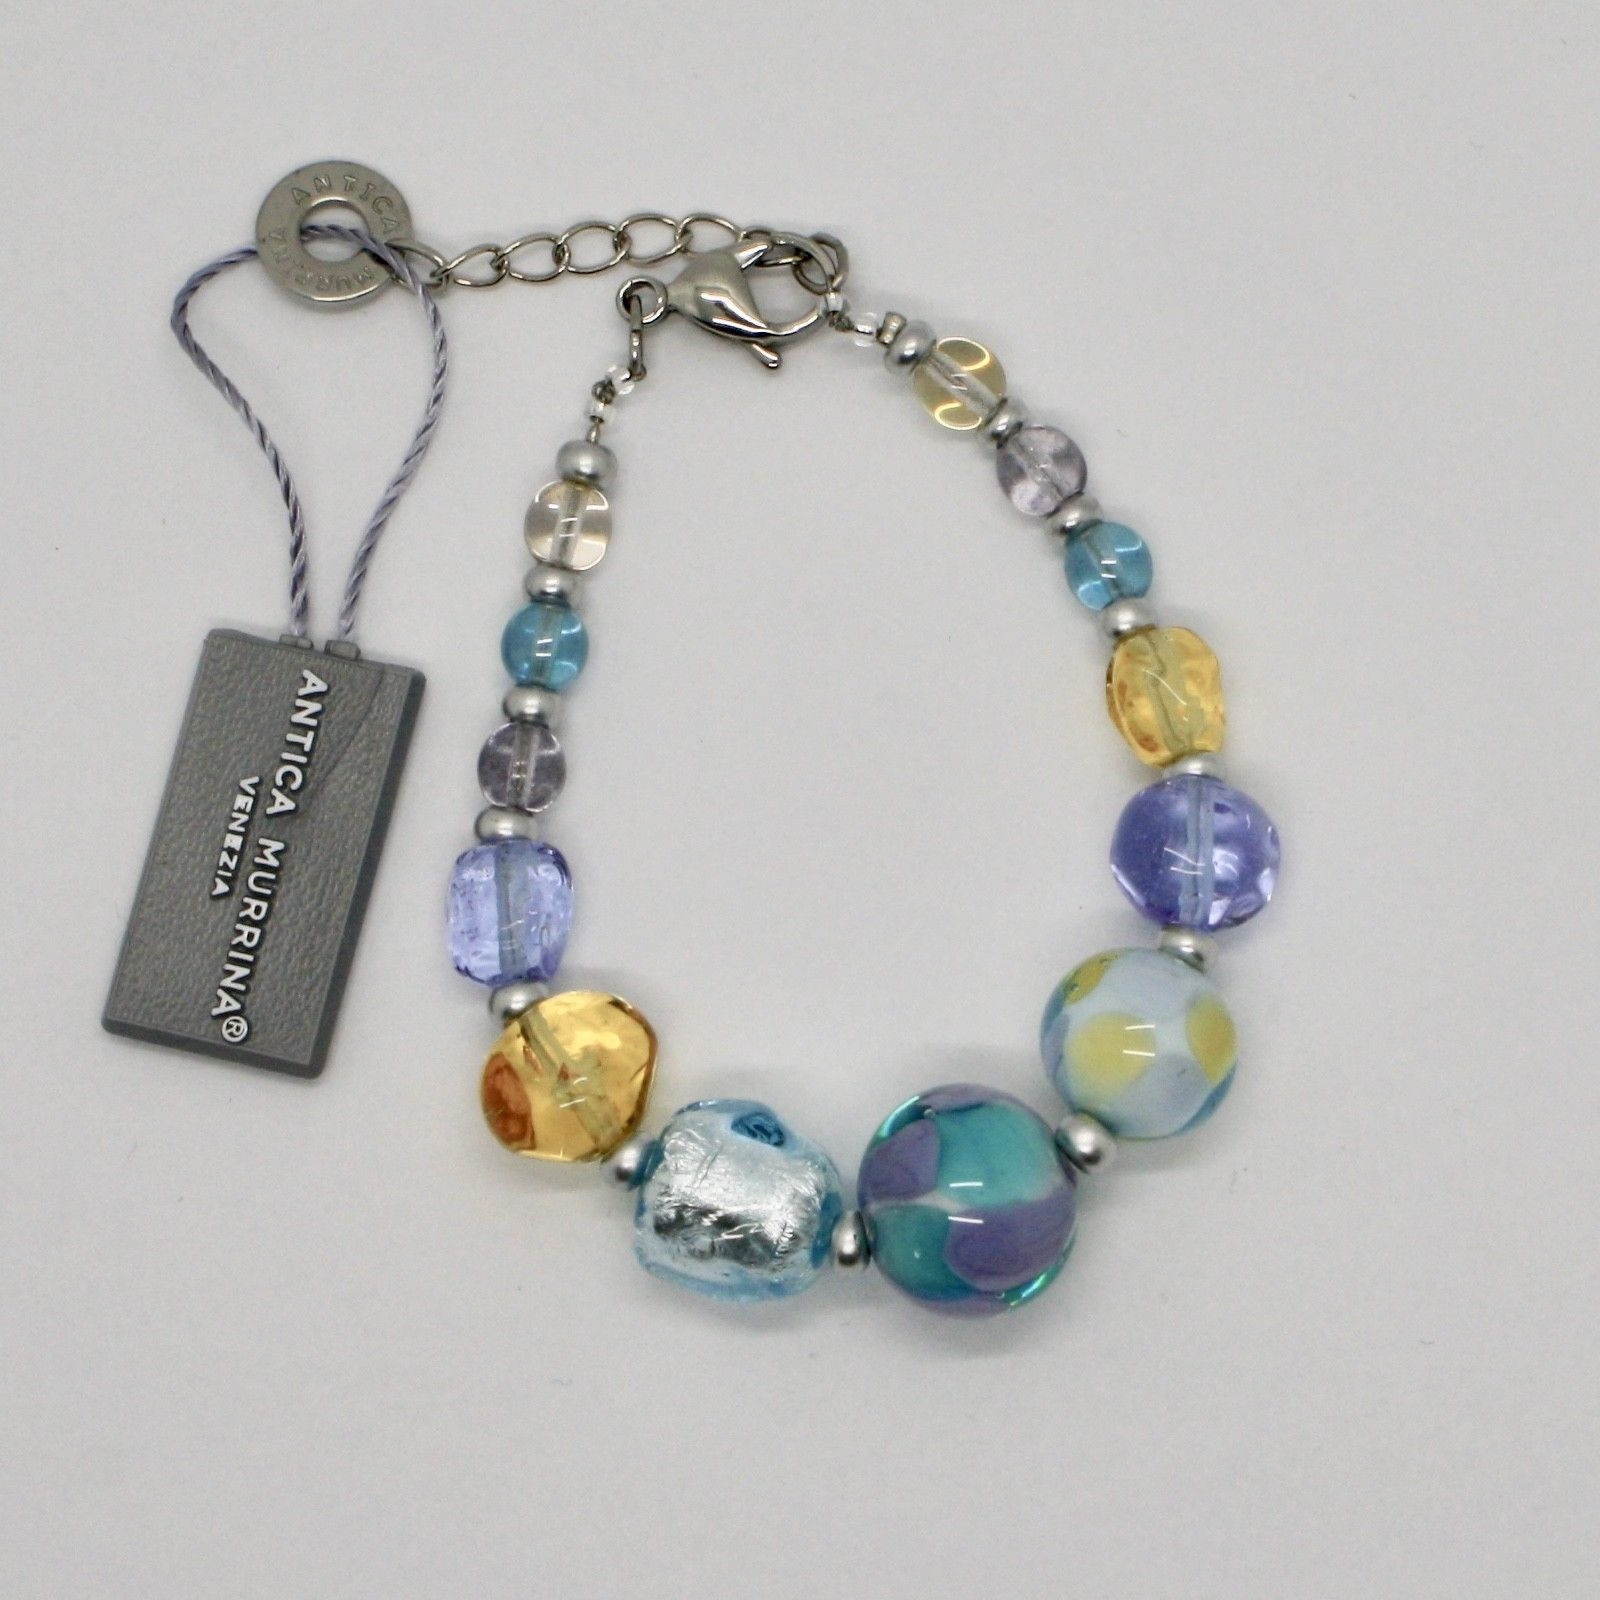 ANTICA MURRINA VENEZIA BRACELET WITH MURANO GLASS BLUE YELLOW BEIGE BR799A07